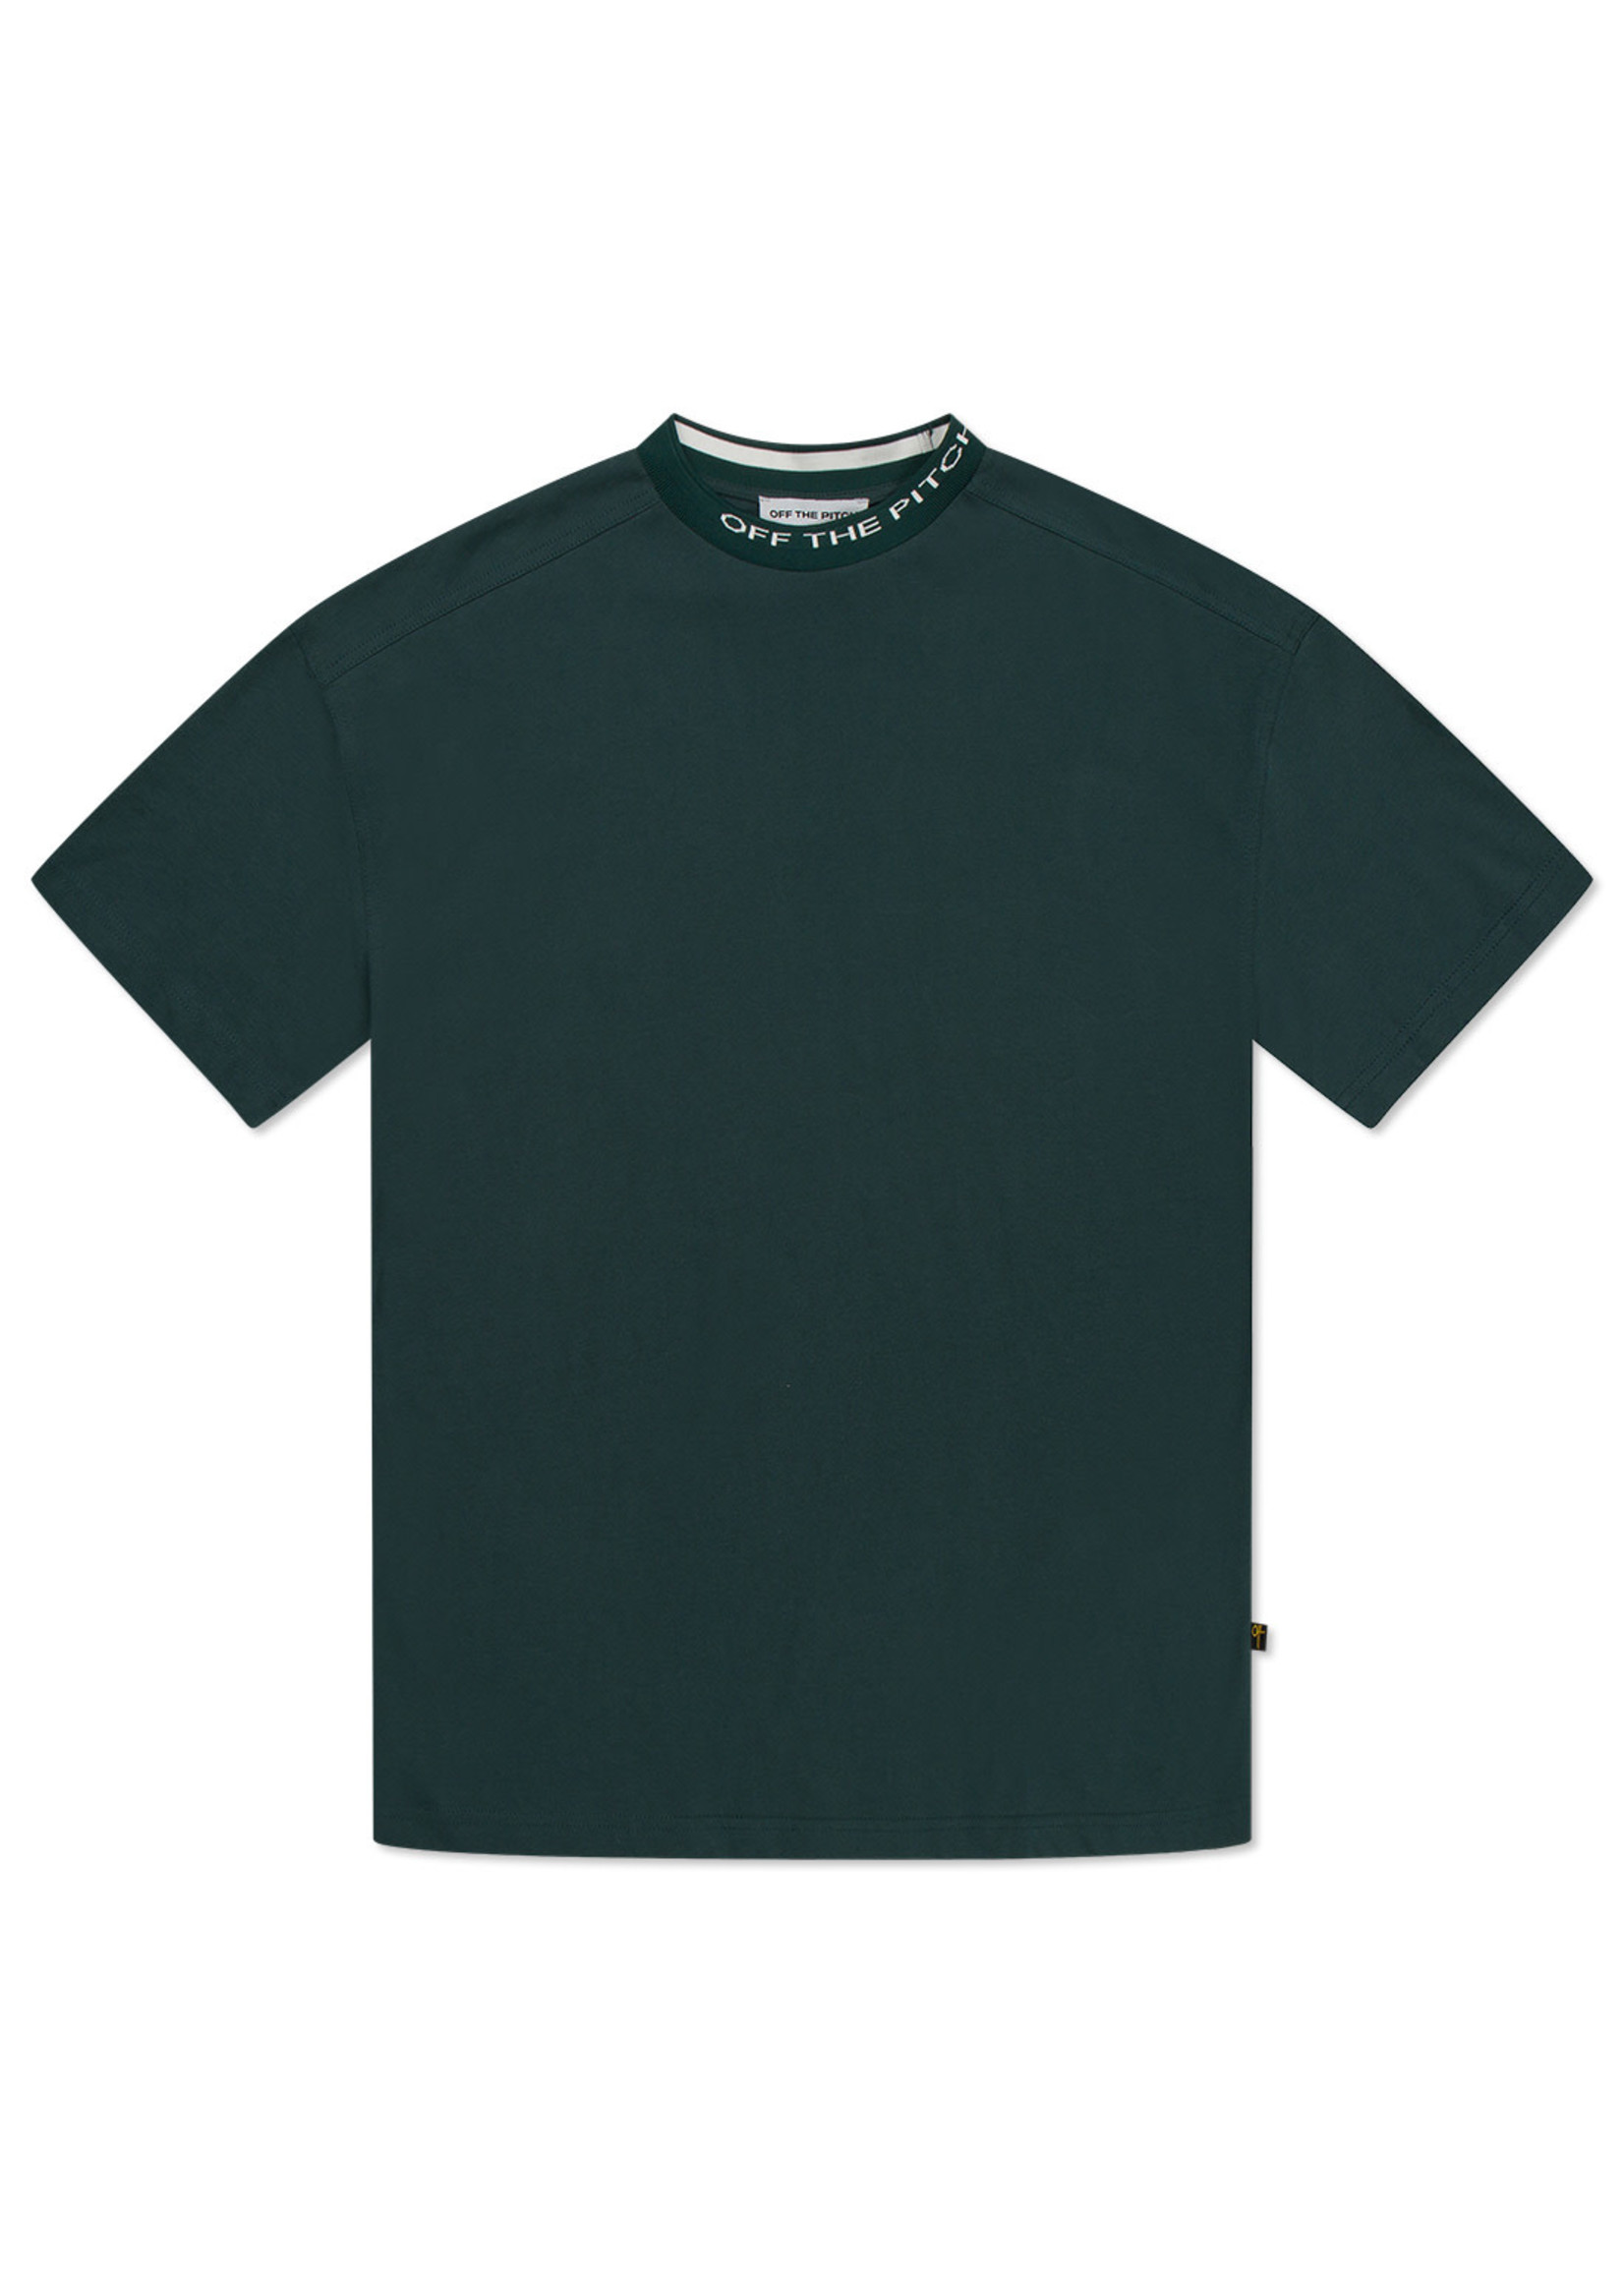 OFF THE PITCH The Orphan Tee - Dark Green